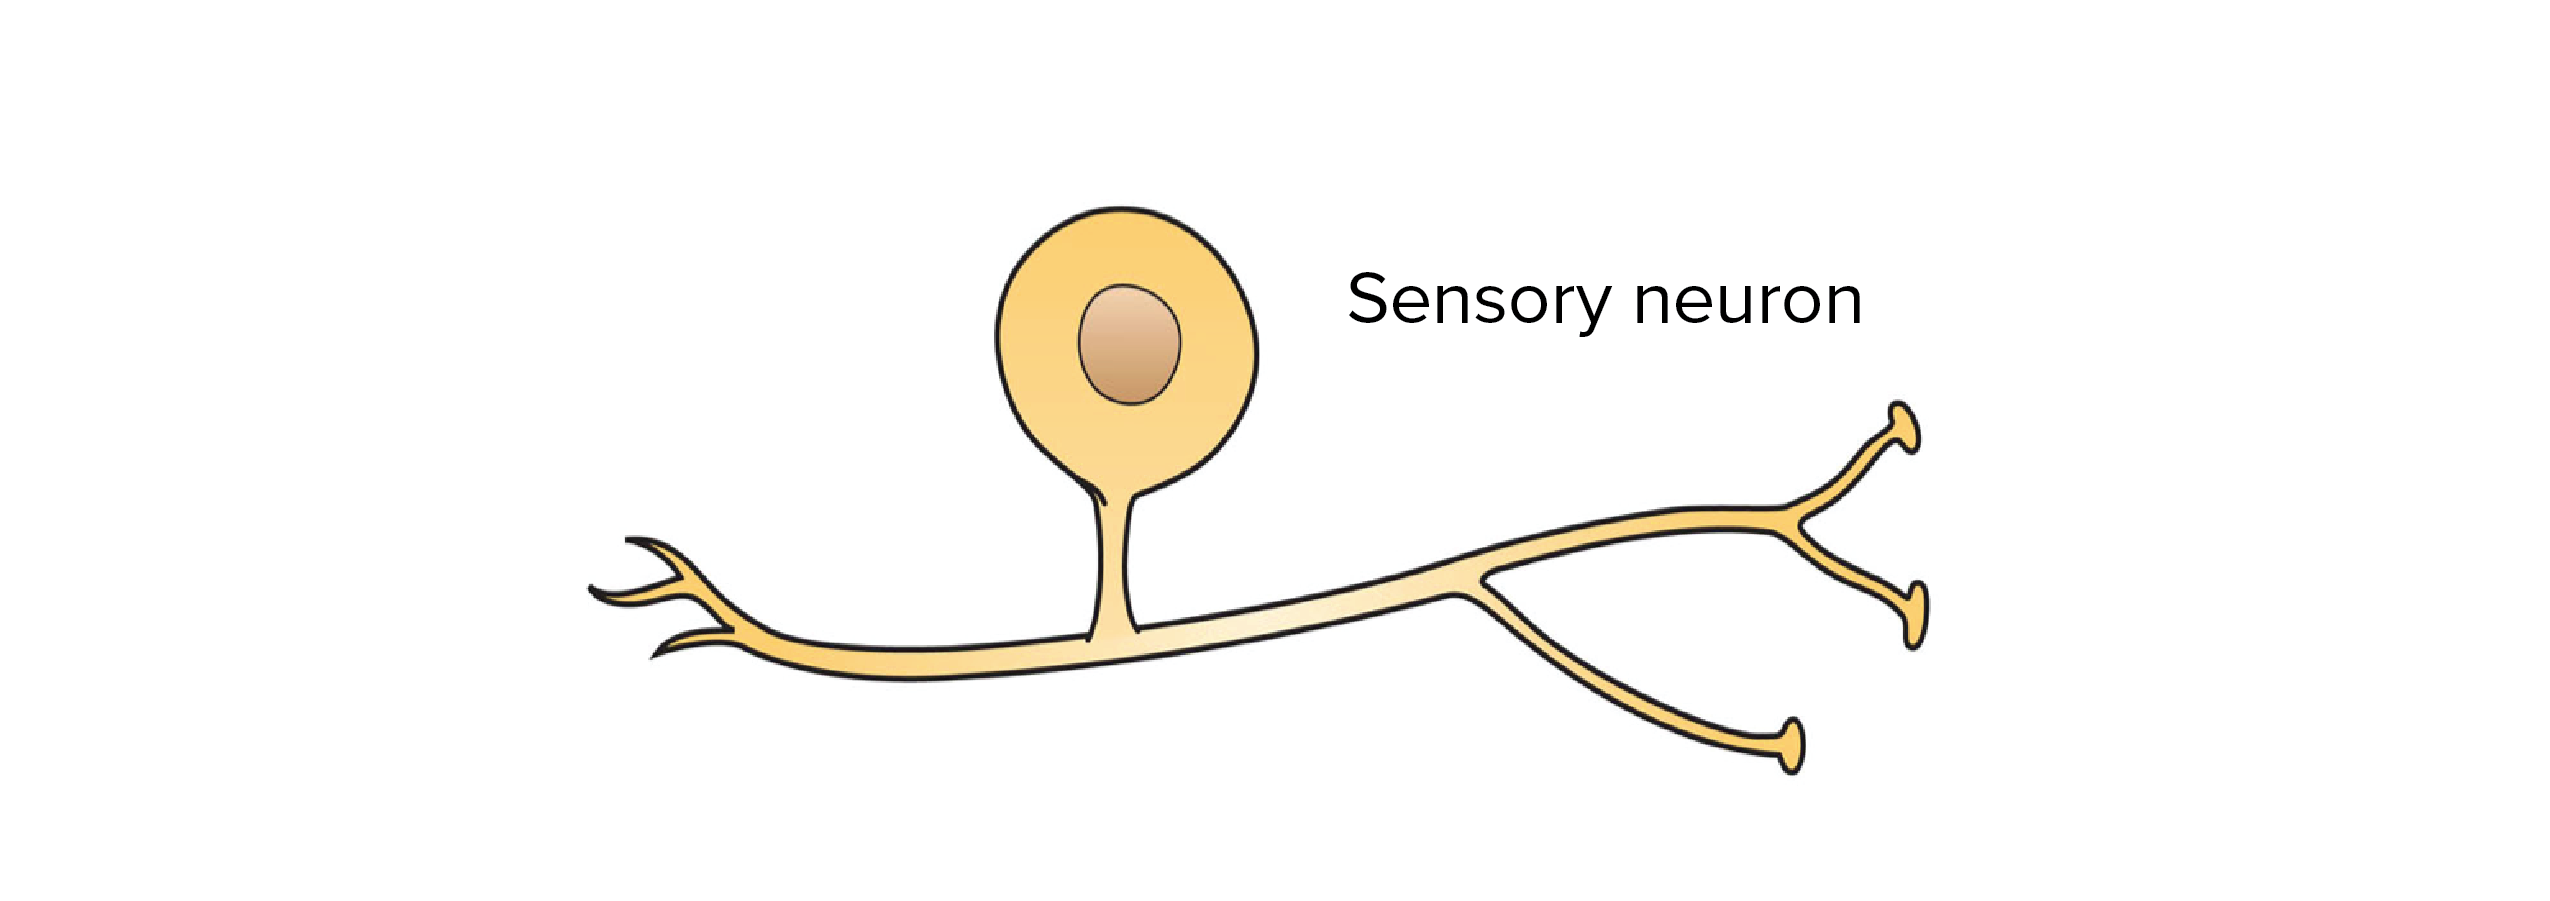 simple diagram of a sensory neuron, showing that it has just one process  that leaves